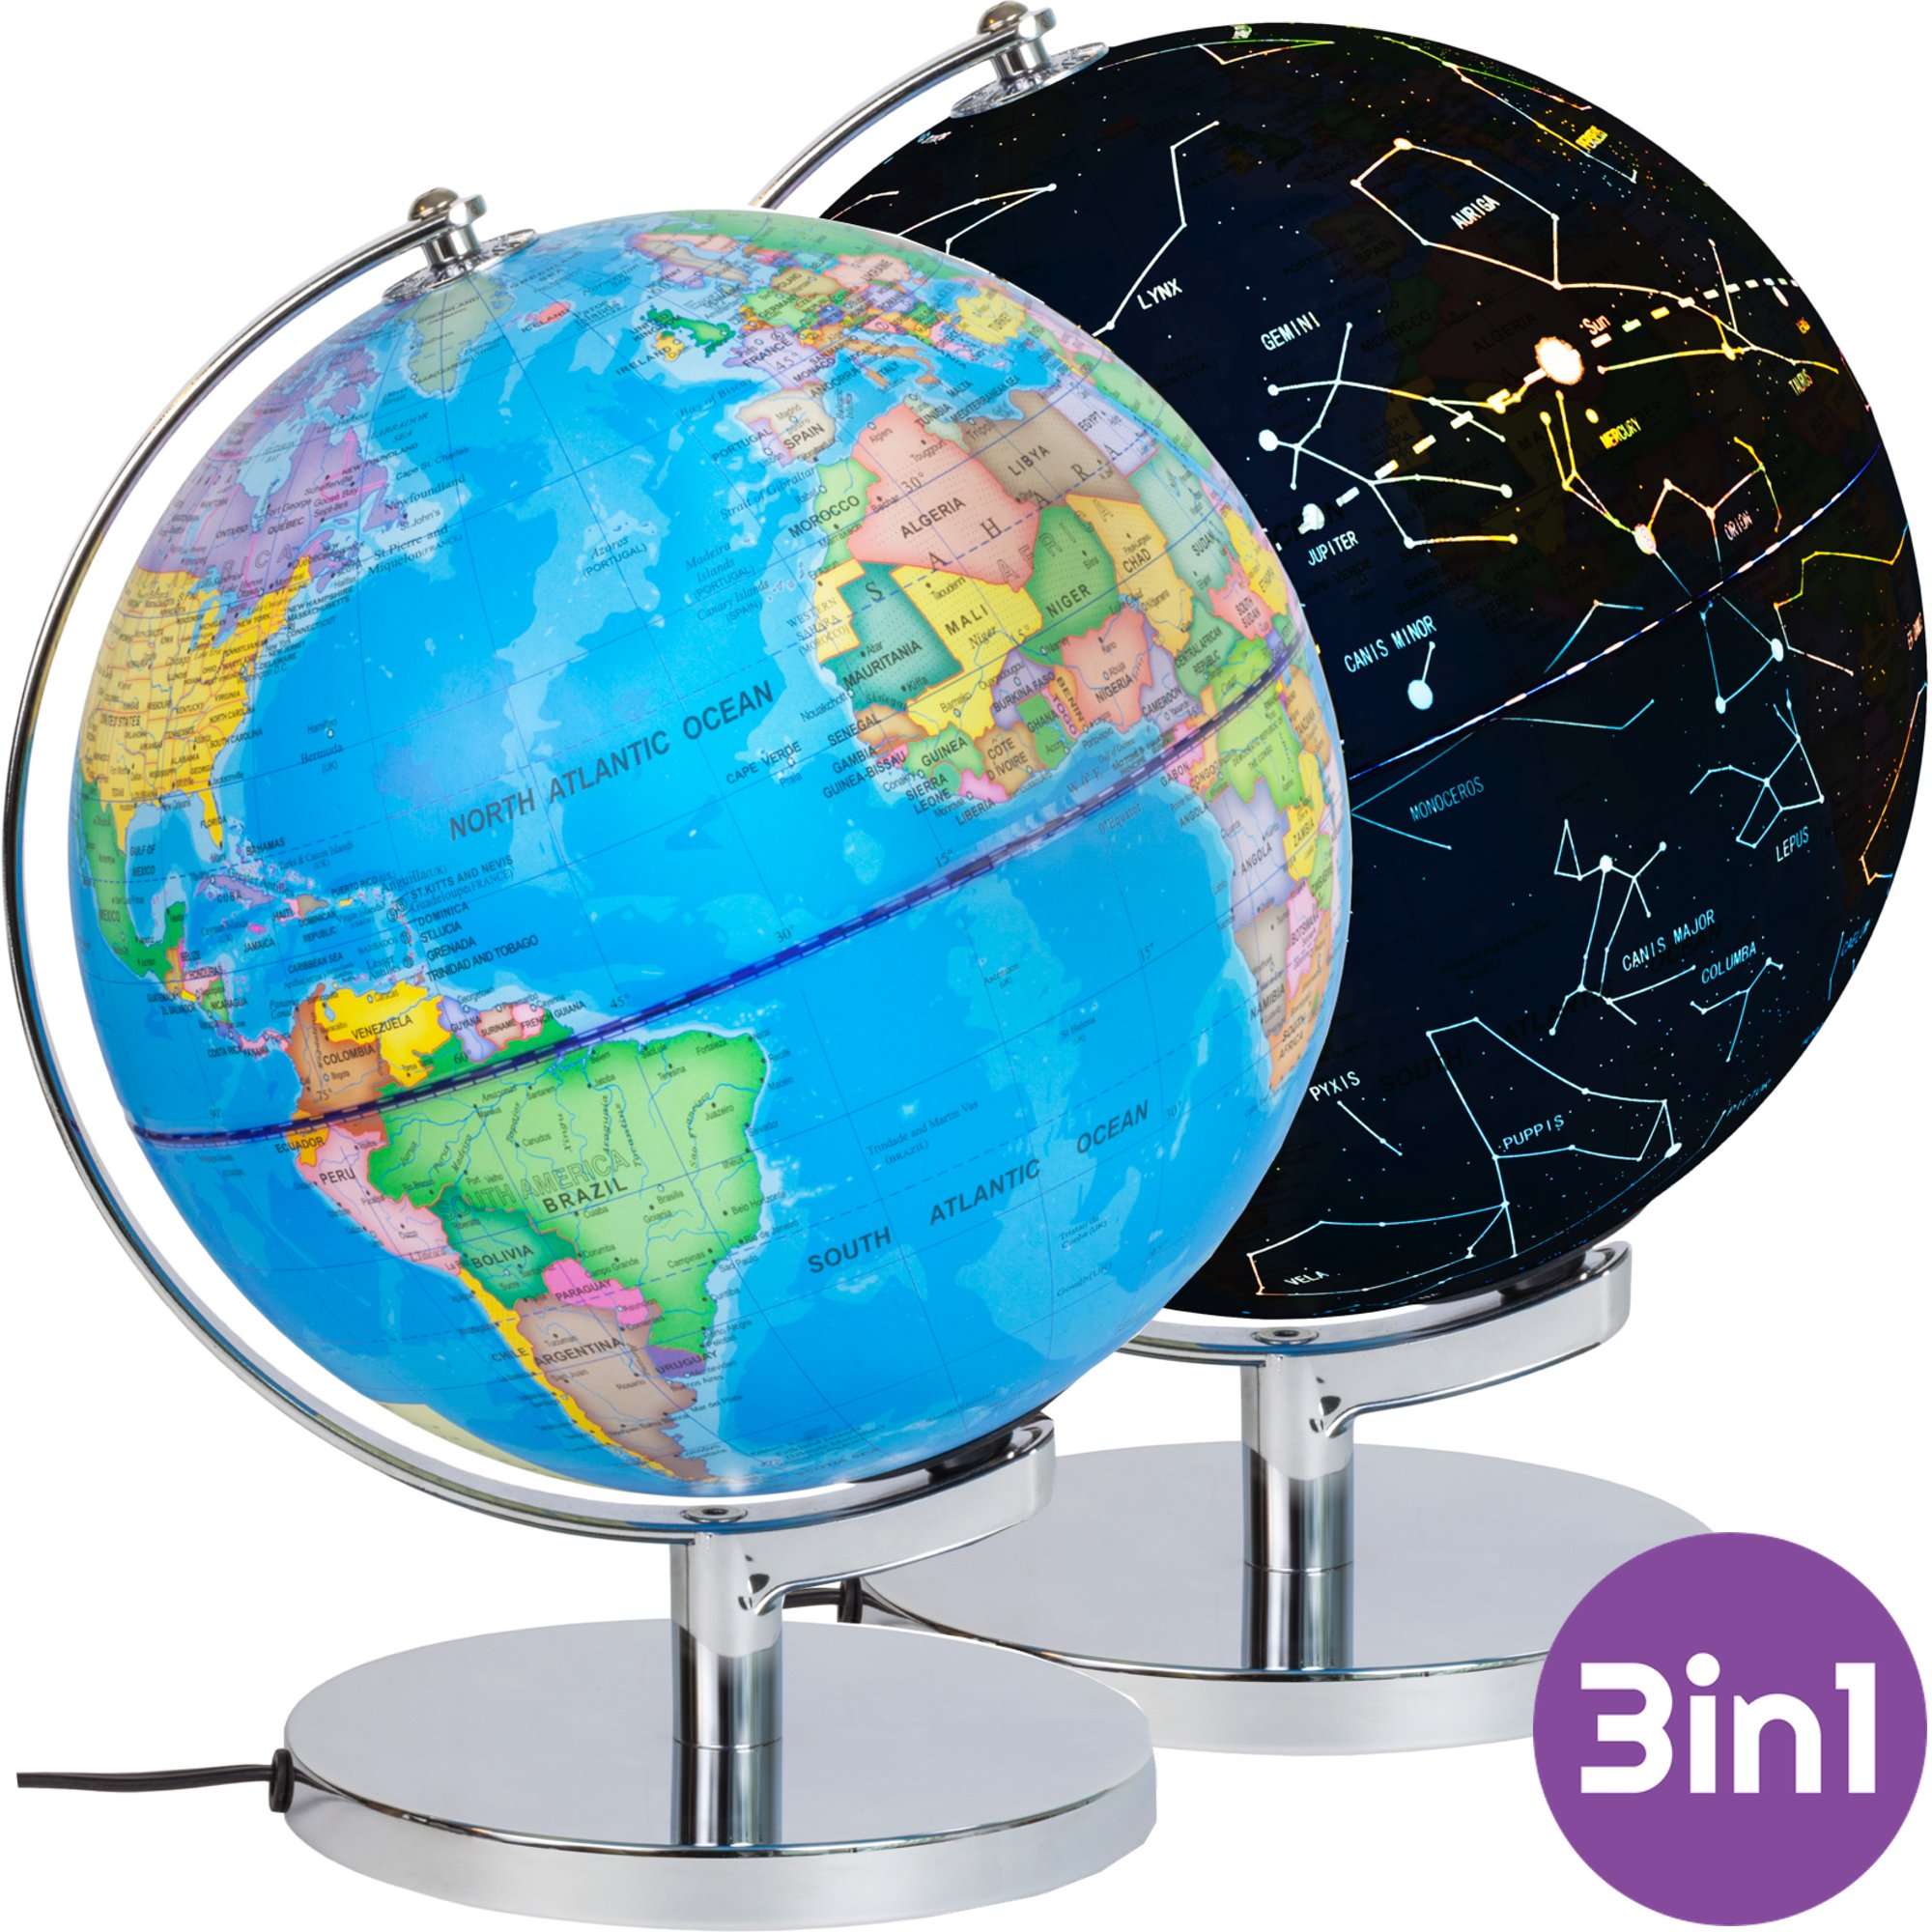 3-in-1 Illuminated World Globe with Stand - Nightlight and Globe Constellation for Kids with Illustrated Constellation Map by VFM Smartplay